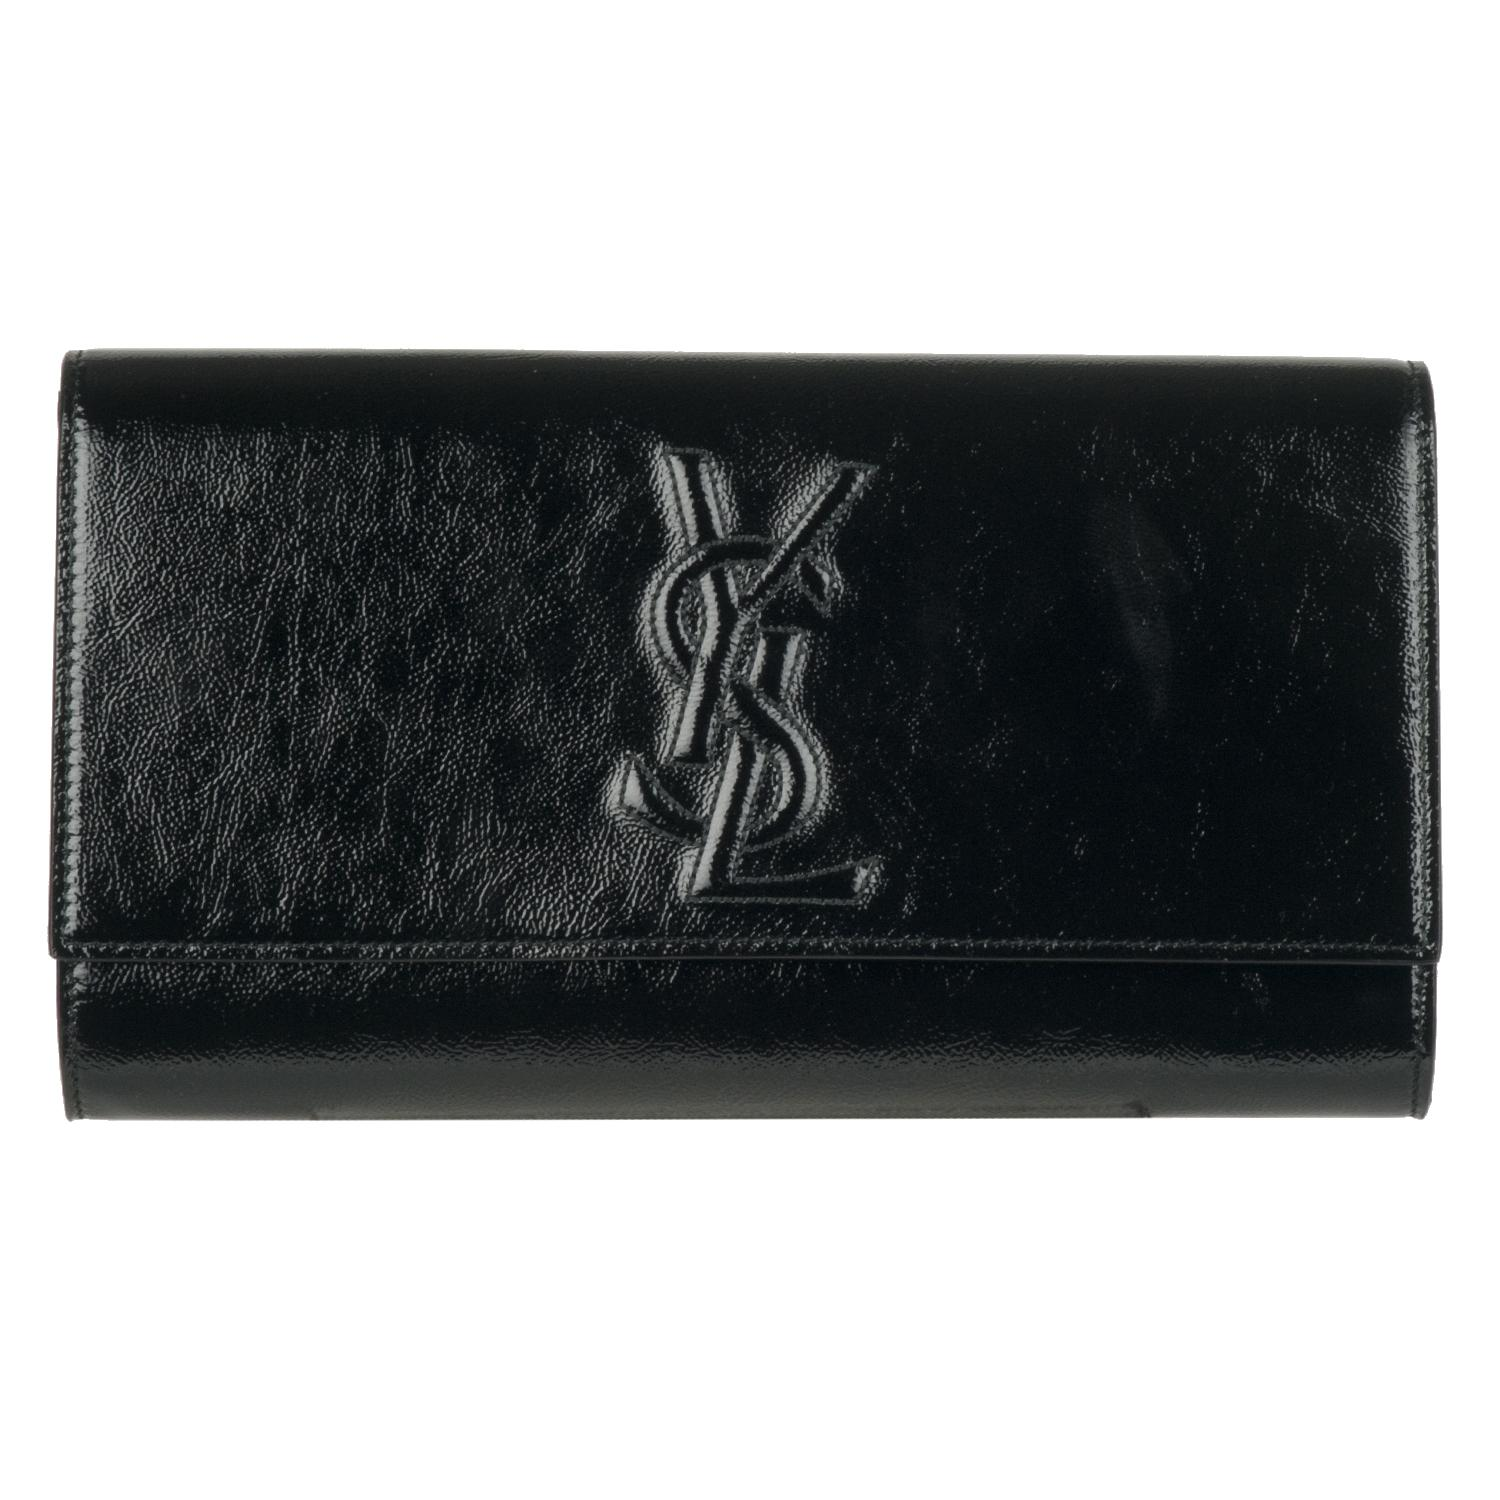 blue yves saint laurent bag - Yves Saint Laurent 203855 Large Black Patent Leather Clutch ...